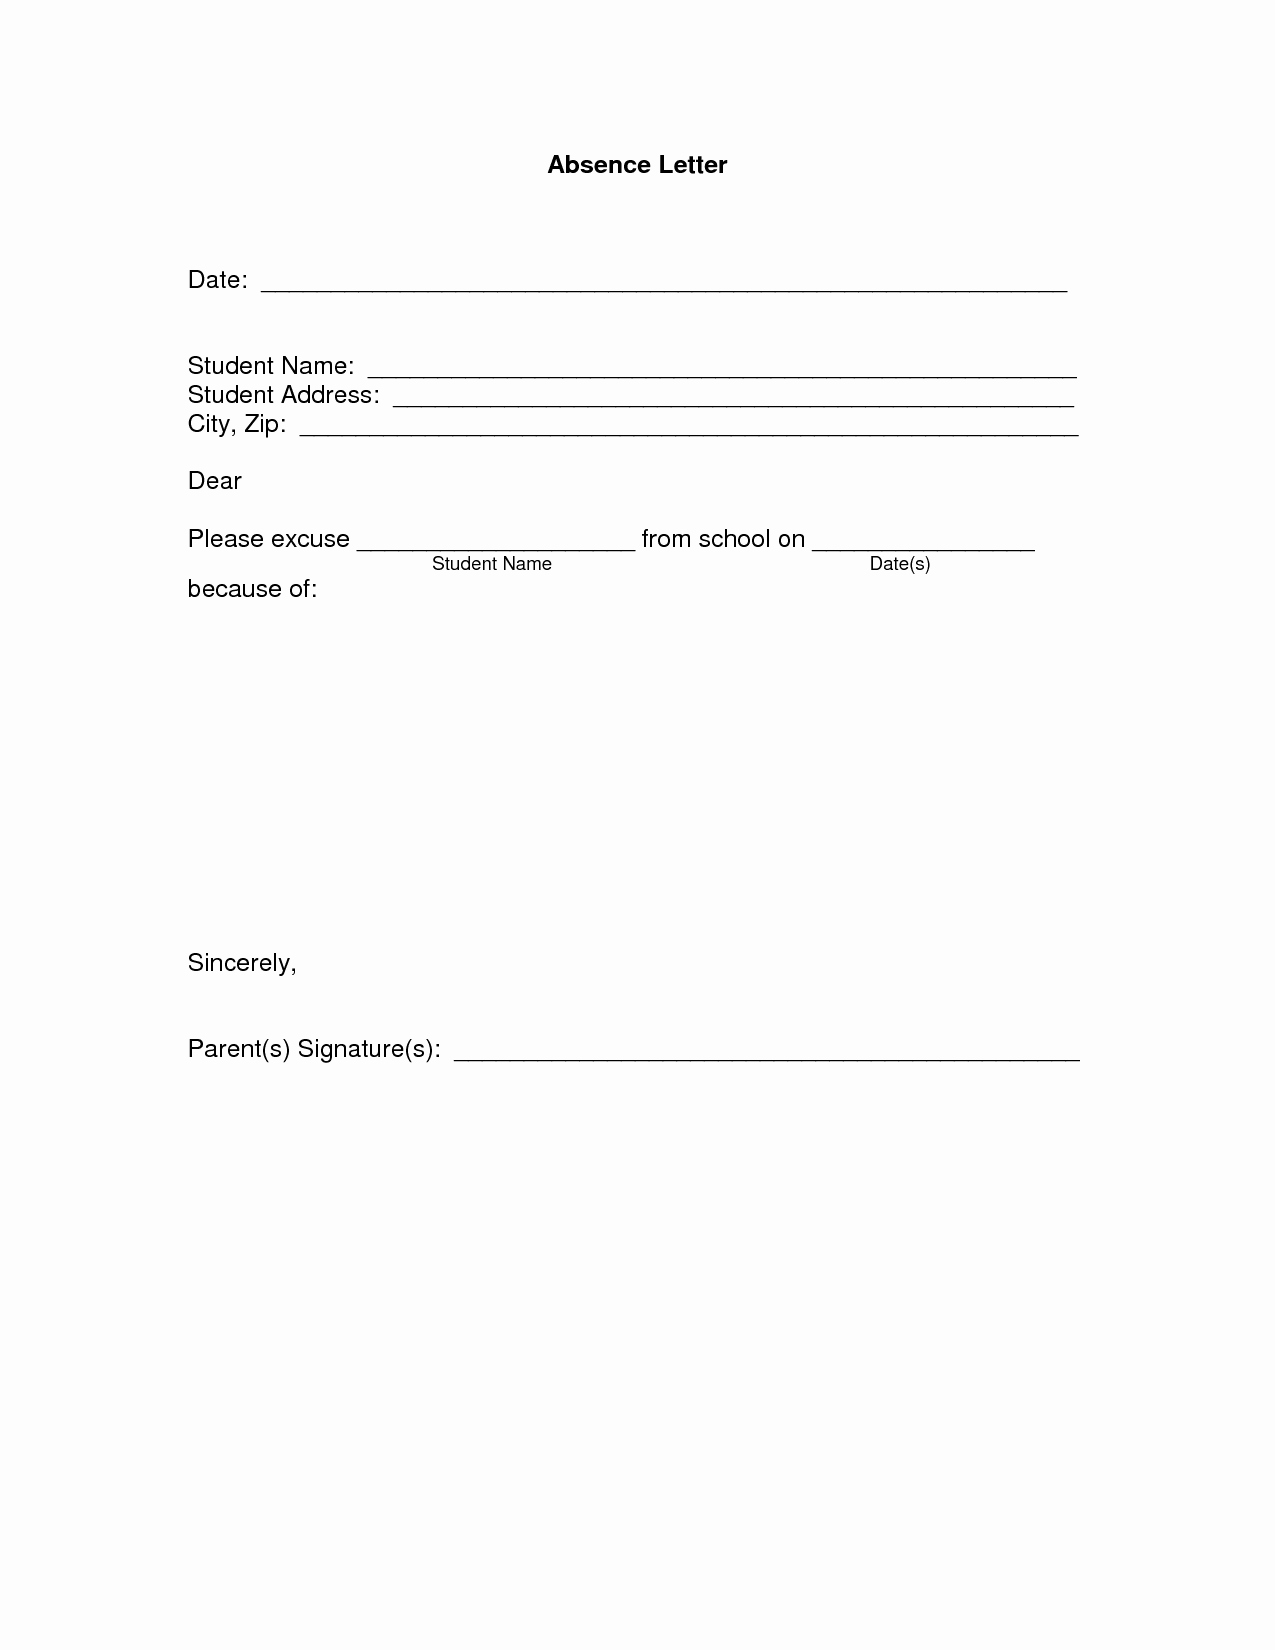 School Note for Being Absent Inspirational Best S Of Student Absence Letter Student Absence